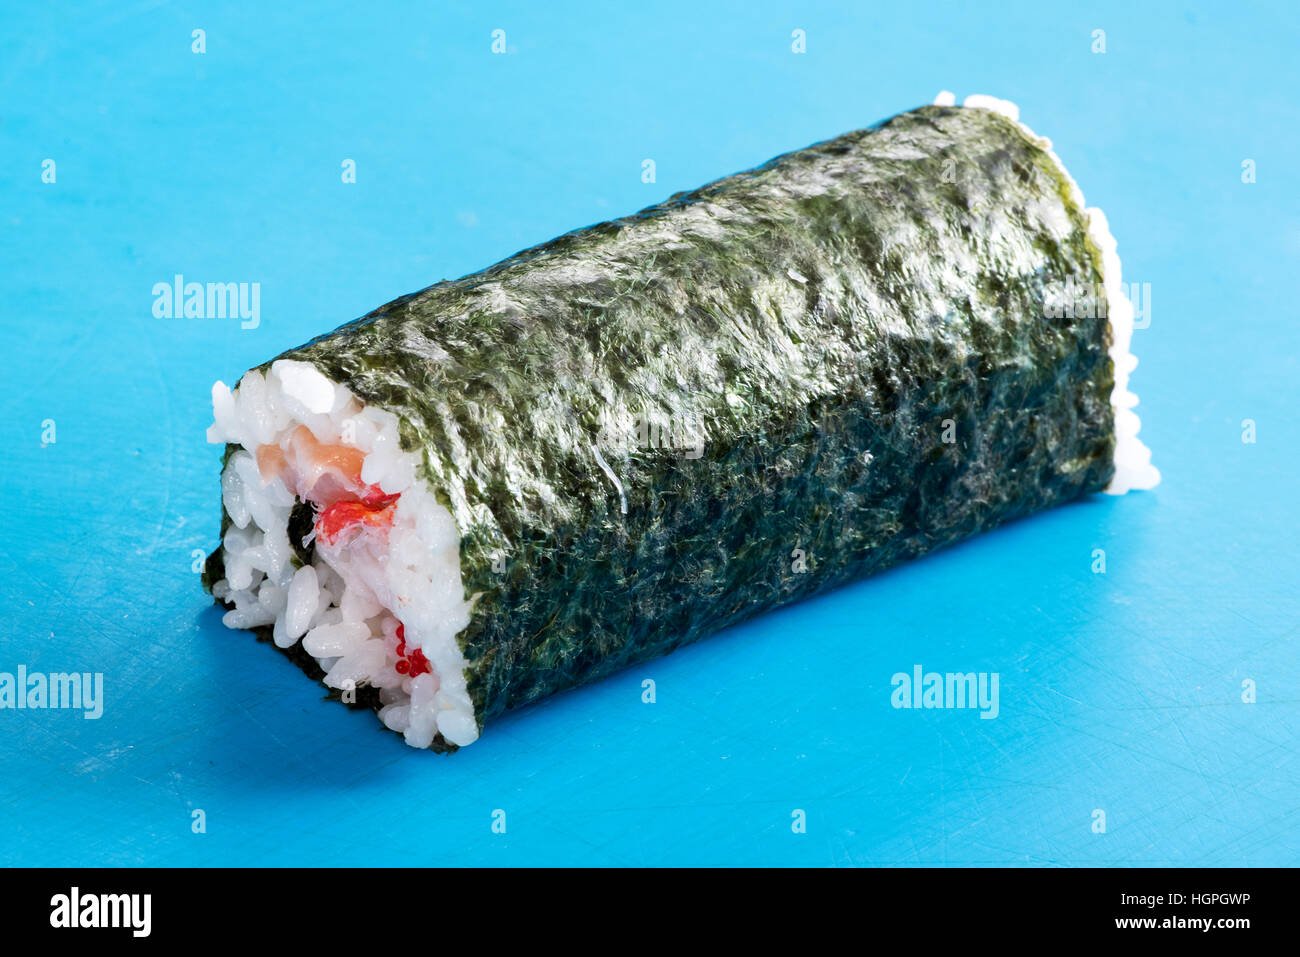 Close up of uncut Futomaki sushi roll in nori on blue surface - Stock Image